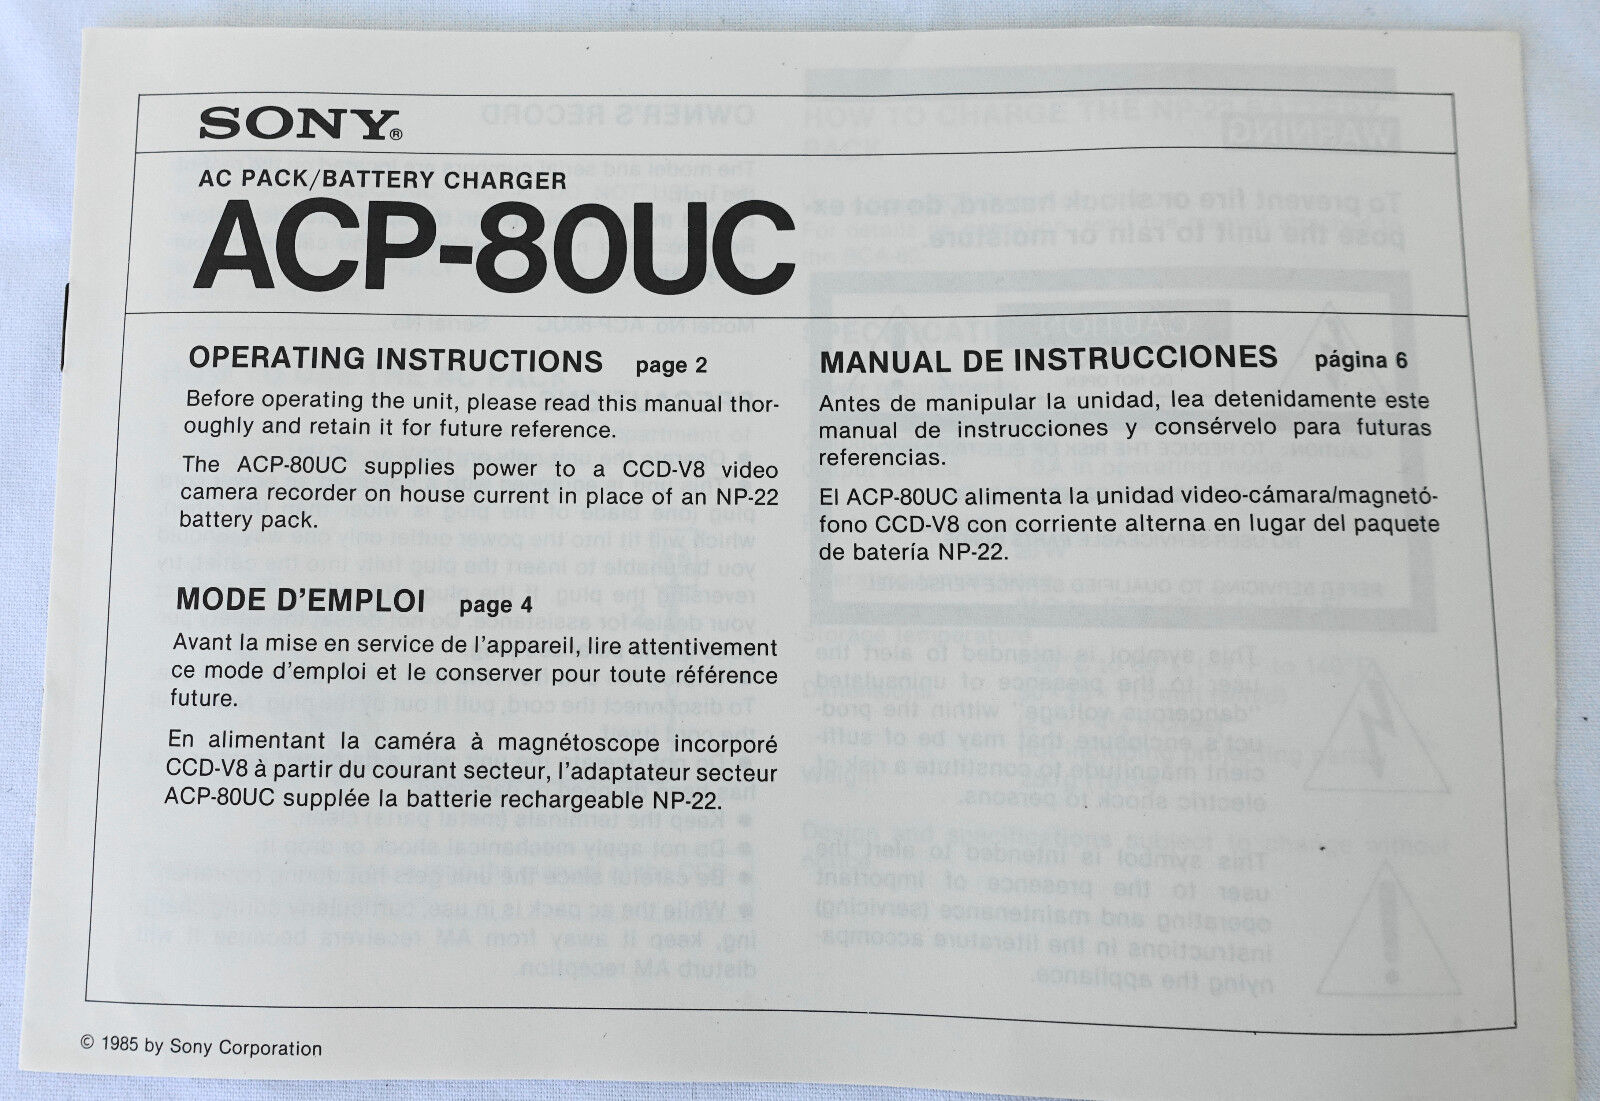 Original Sony AC Pack/Battery Charger ACP-80UC Operating Instruction Manual